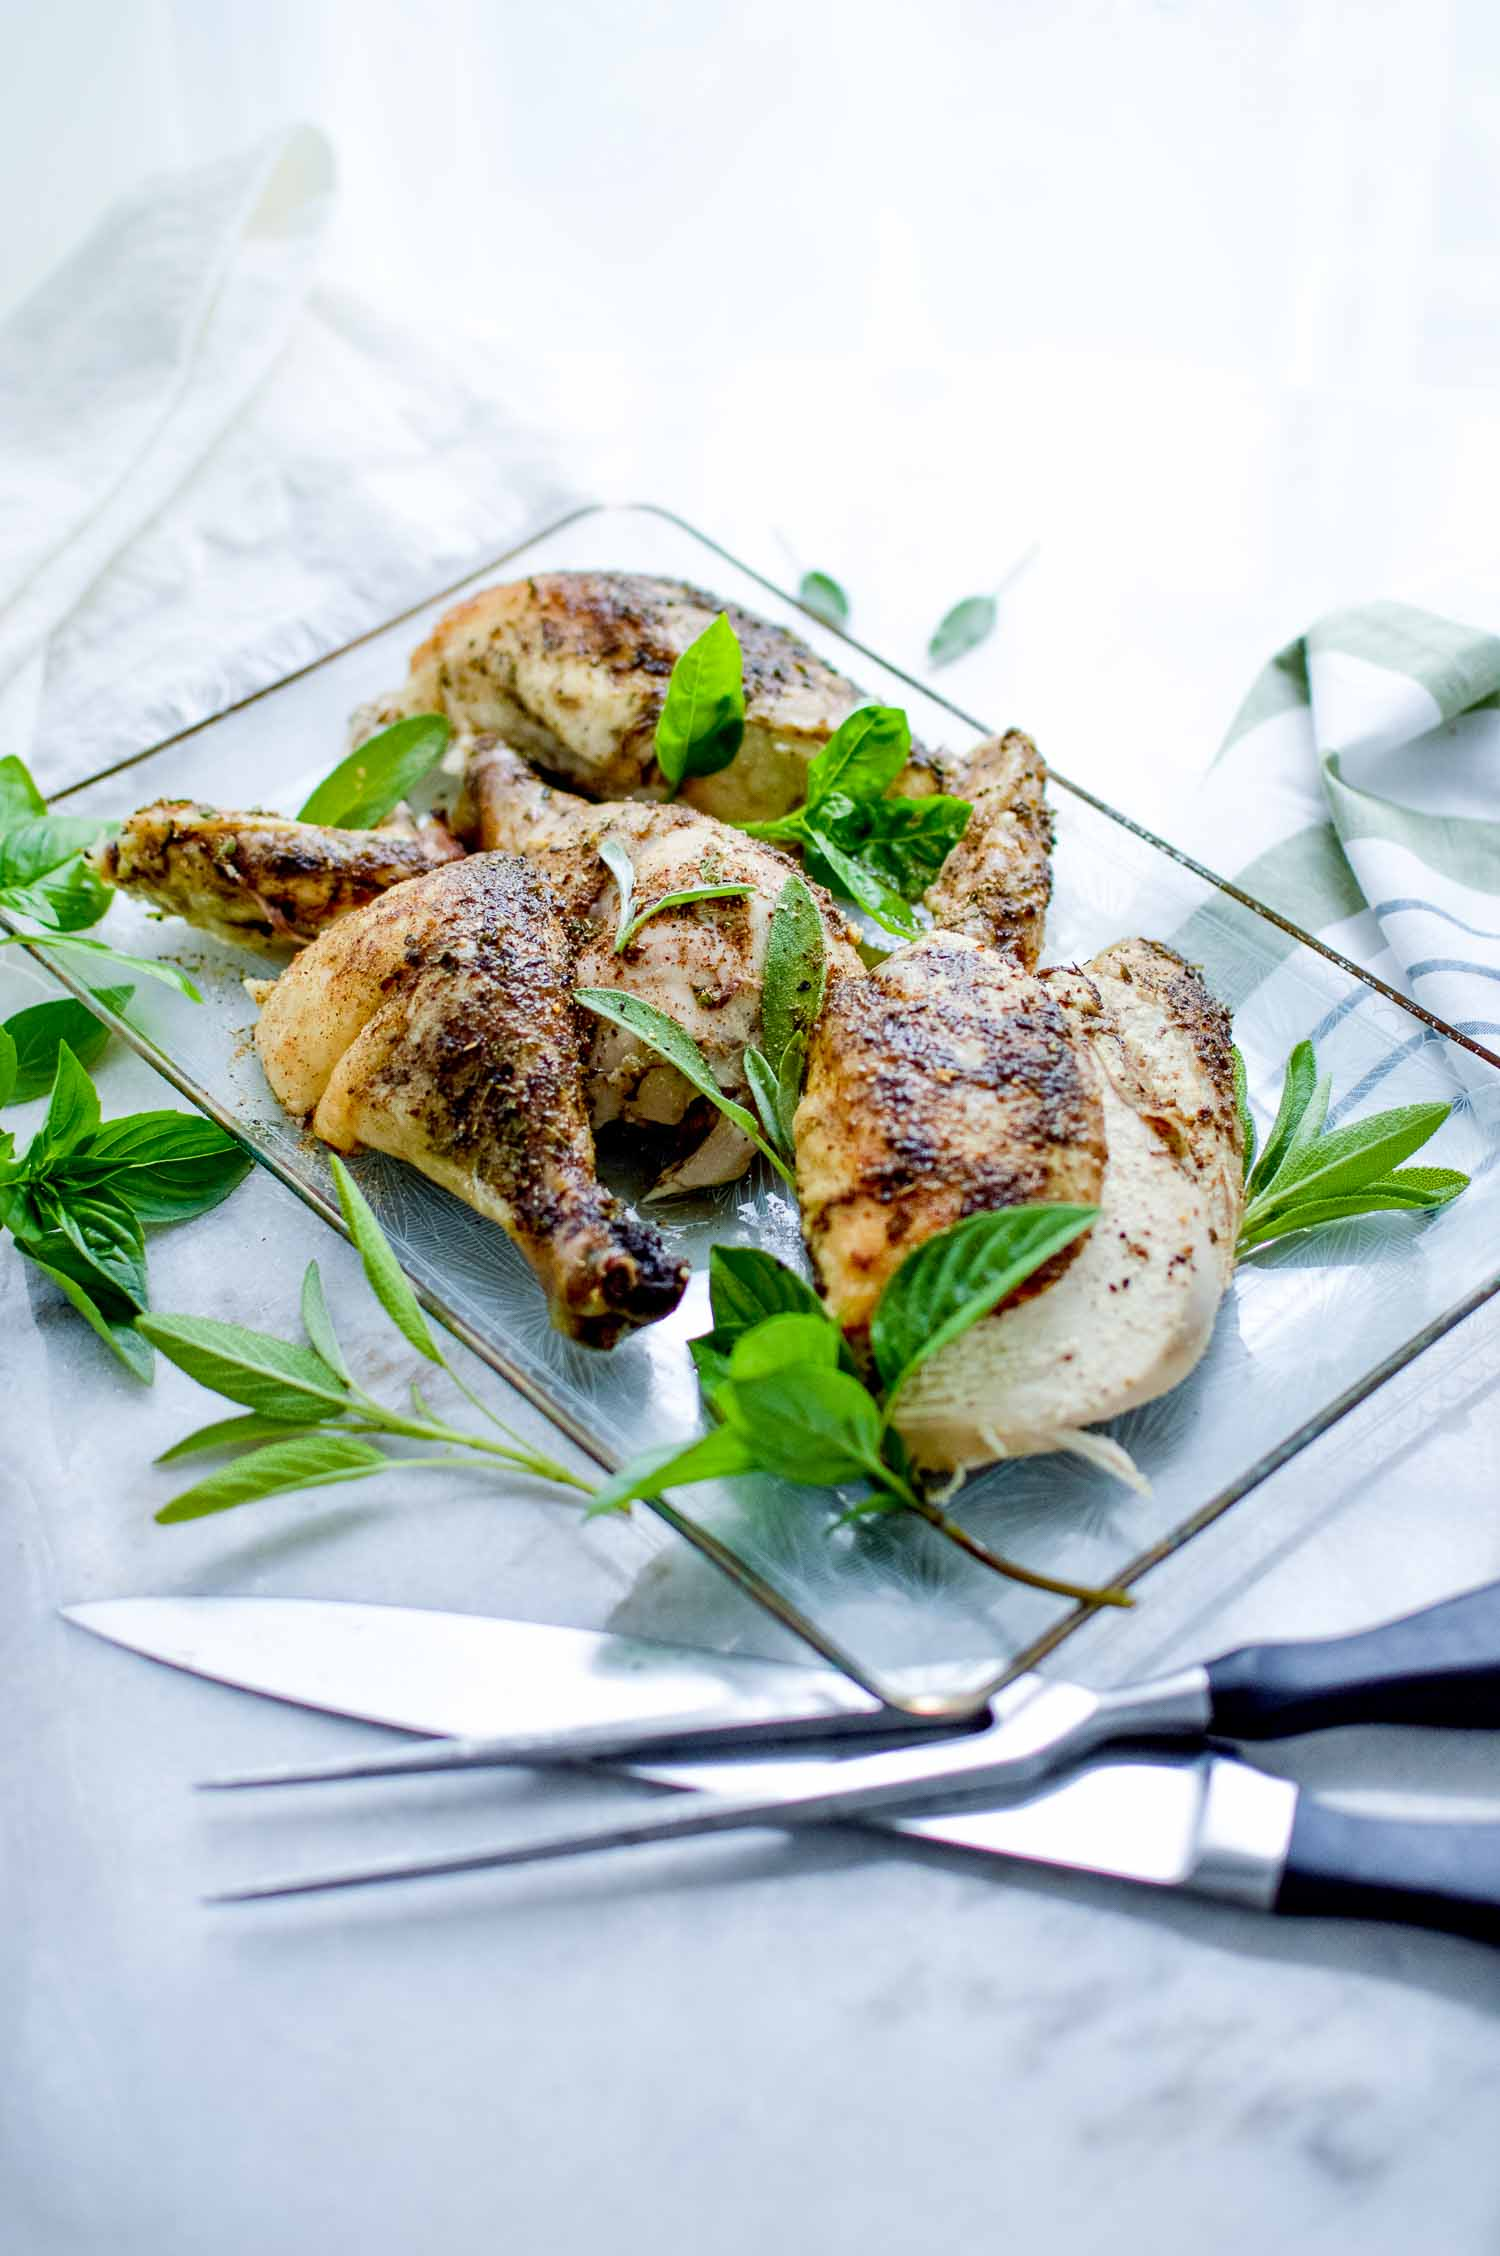 A clear tray with a cut seasoned chicken and green herbs all on and around it and a knife and prongs next to it.